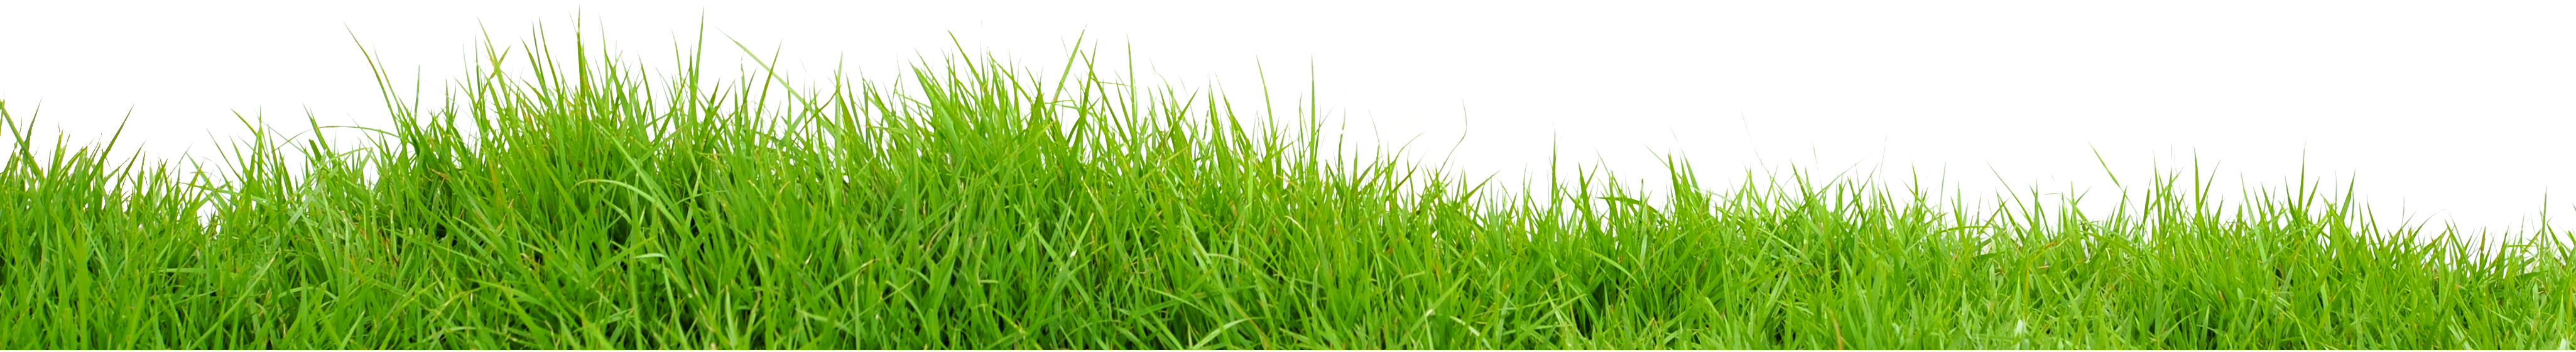 Field PNG Images Transparent Free Download.